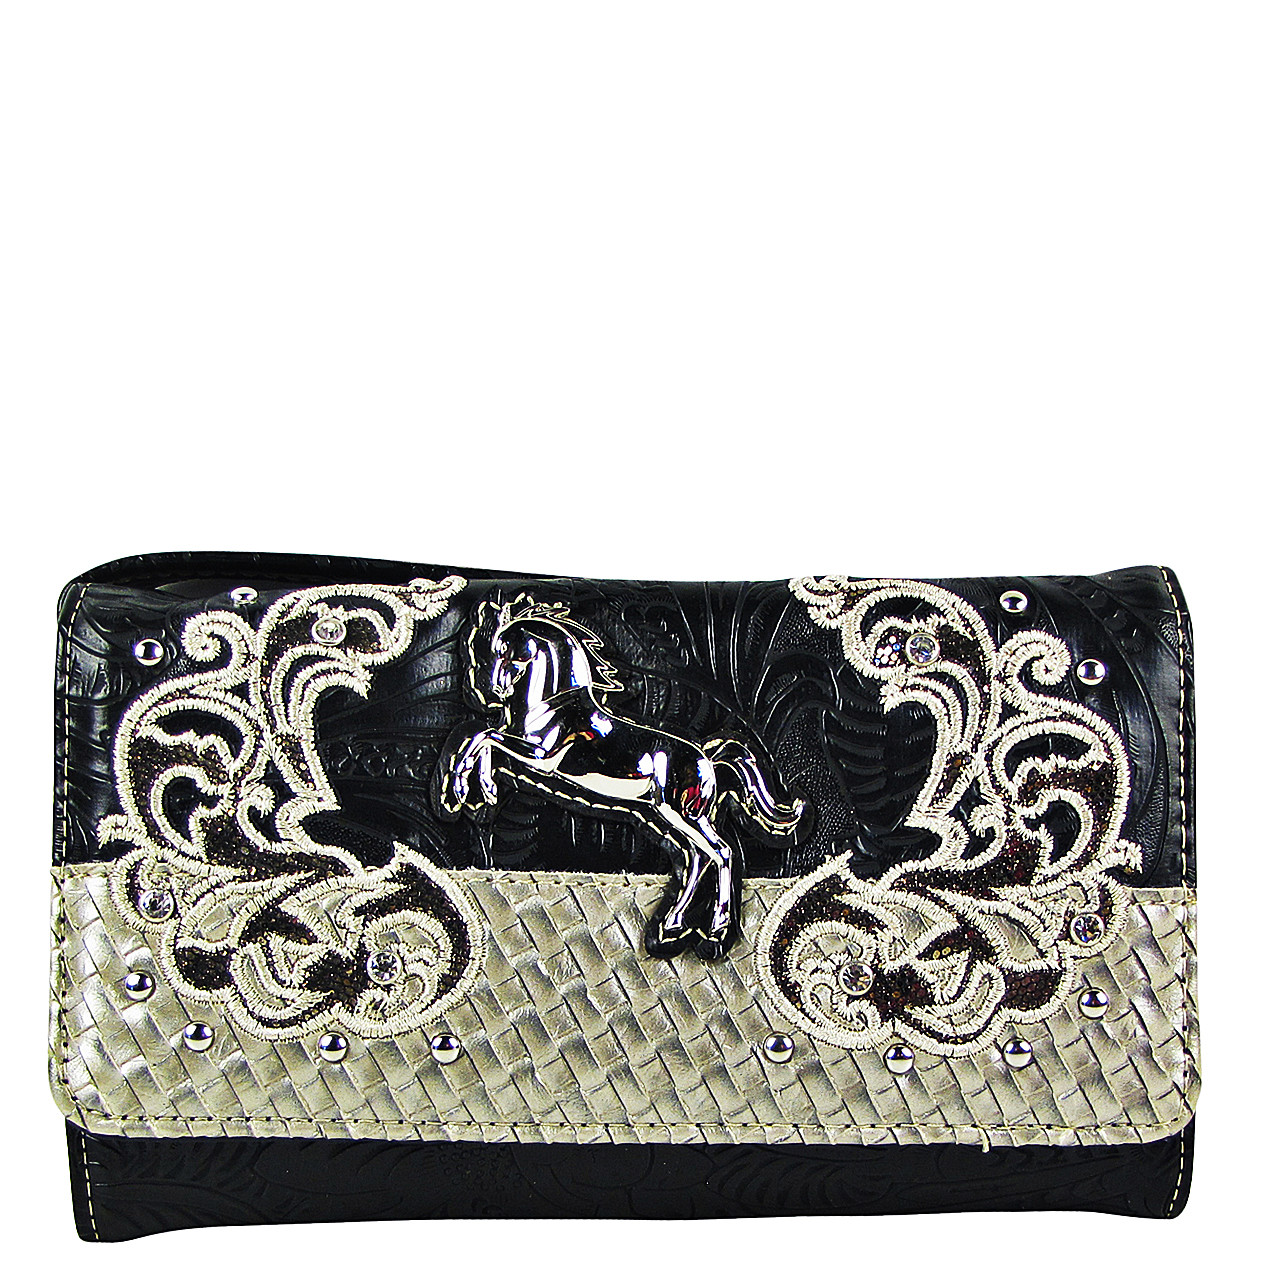 BLACK STUDDED HORSE LOOK CLUTCH TRIFOLD WALLET CW1-1285BLK